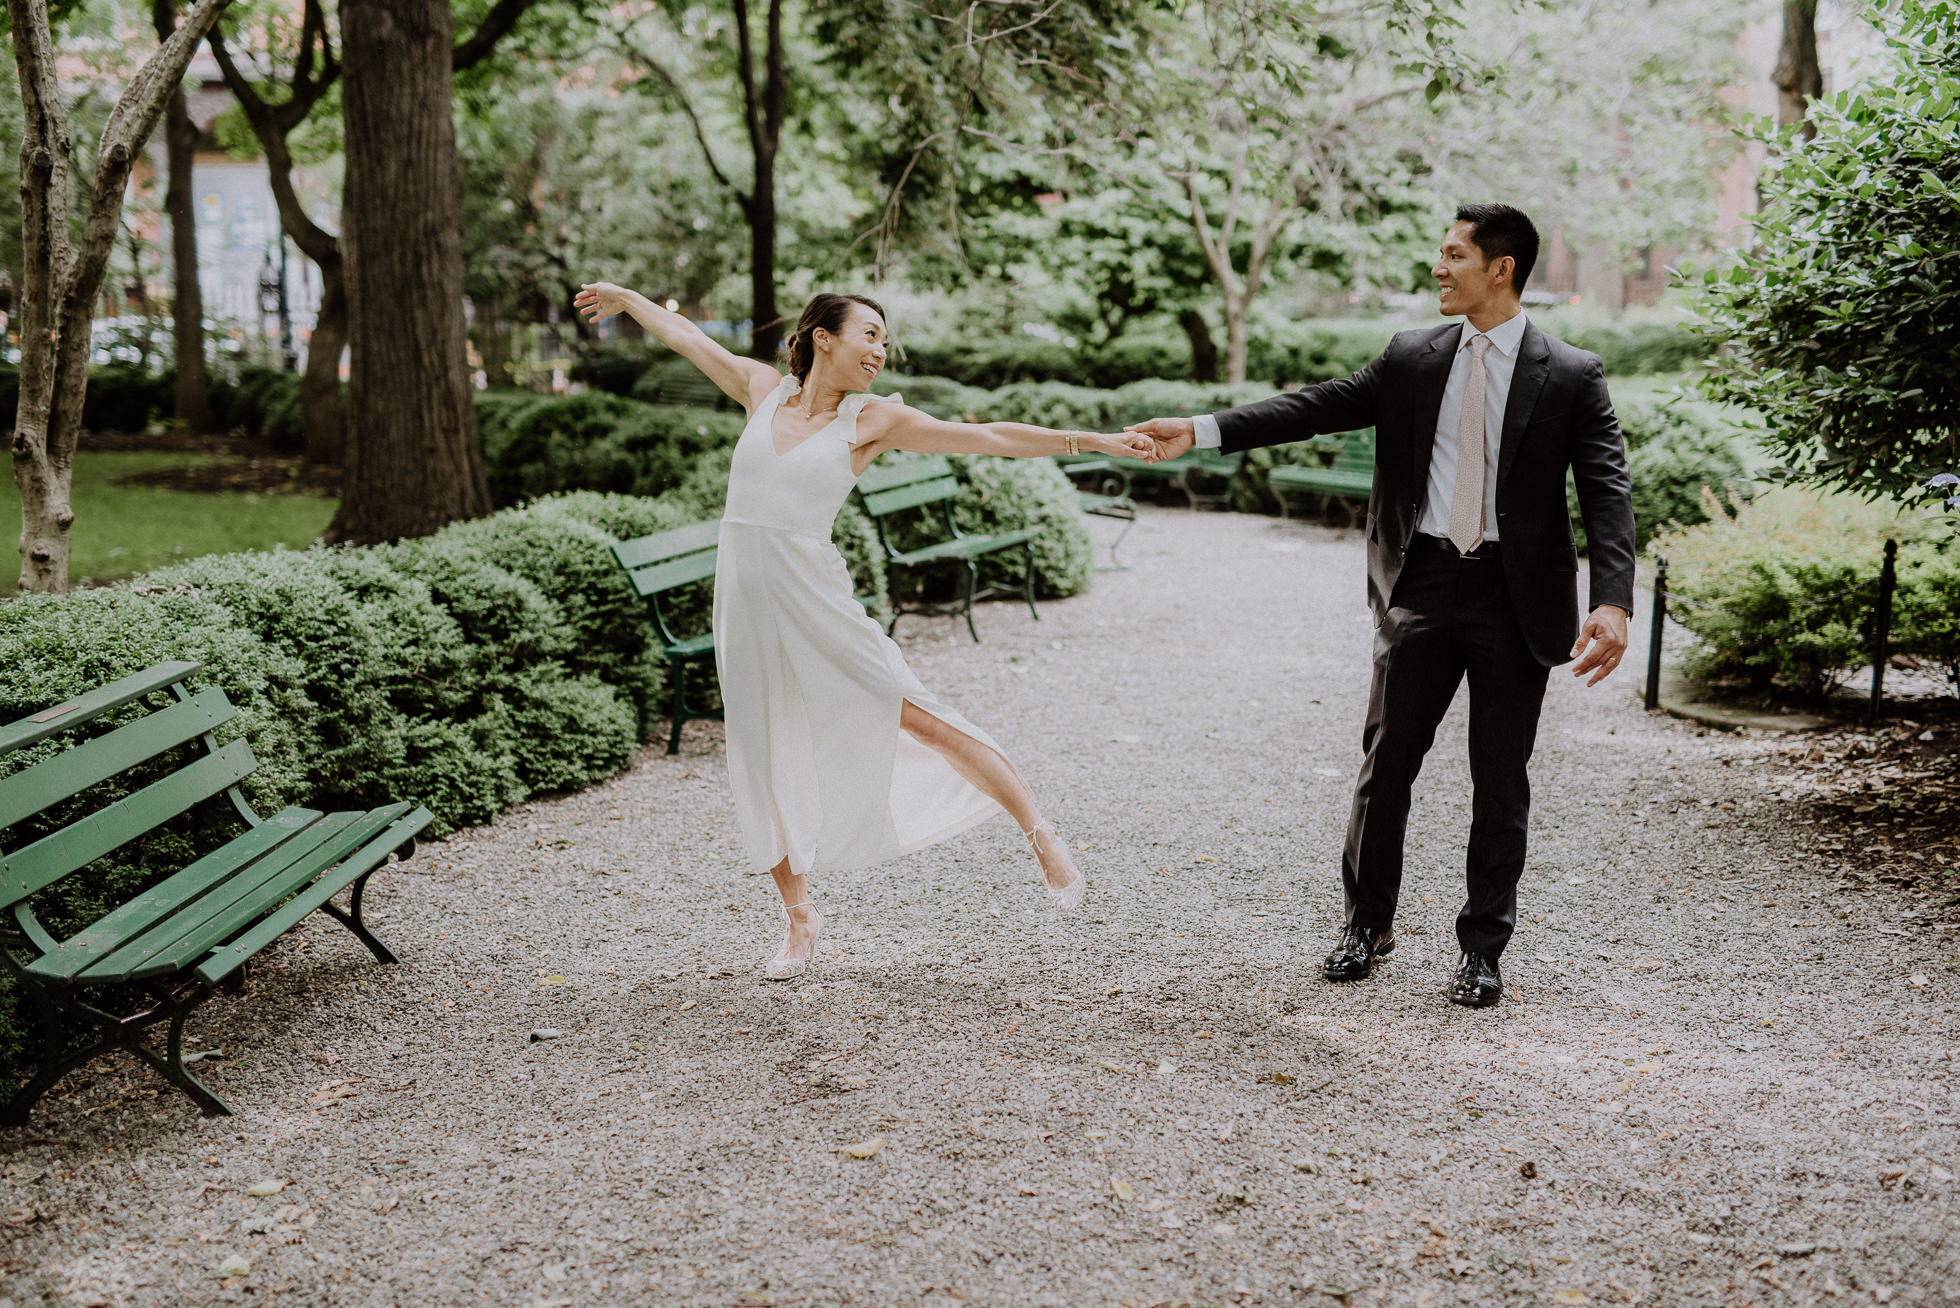 Gramercy Park wedding photos